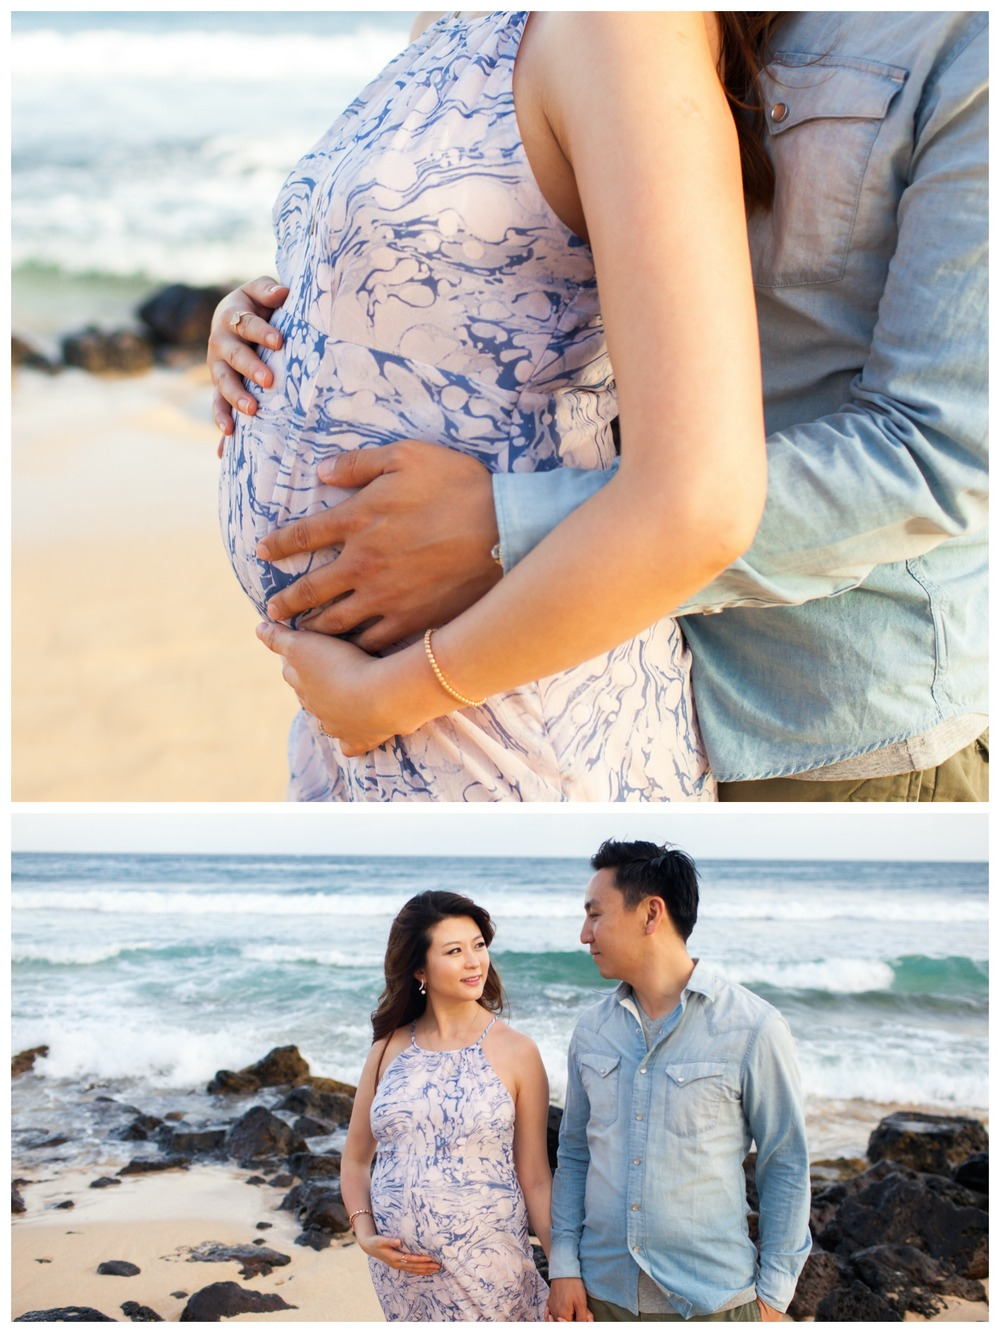 Pacific Dream Photography - Hawaii Photographer - Portrait Photographer - Family Photographer - Oahu Photographer - Maternity Photographer - Hawaii Maternity Photography - Oahu Maternity Photography